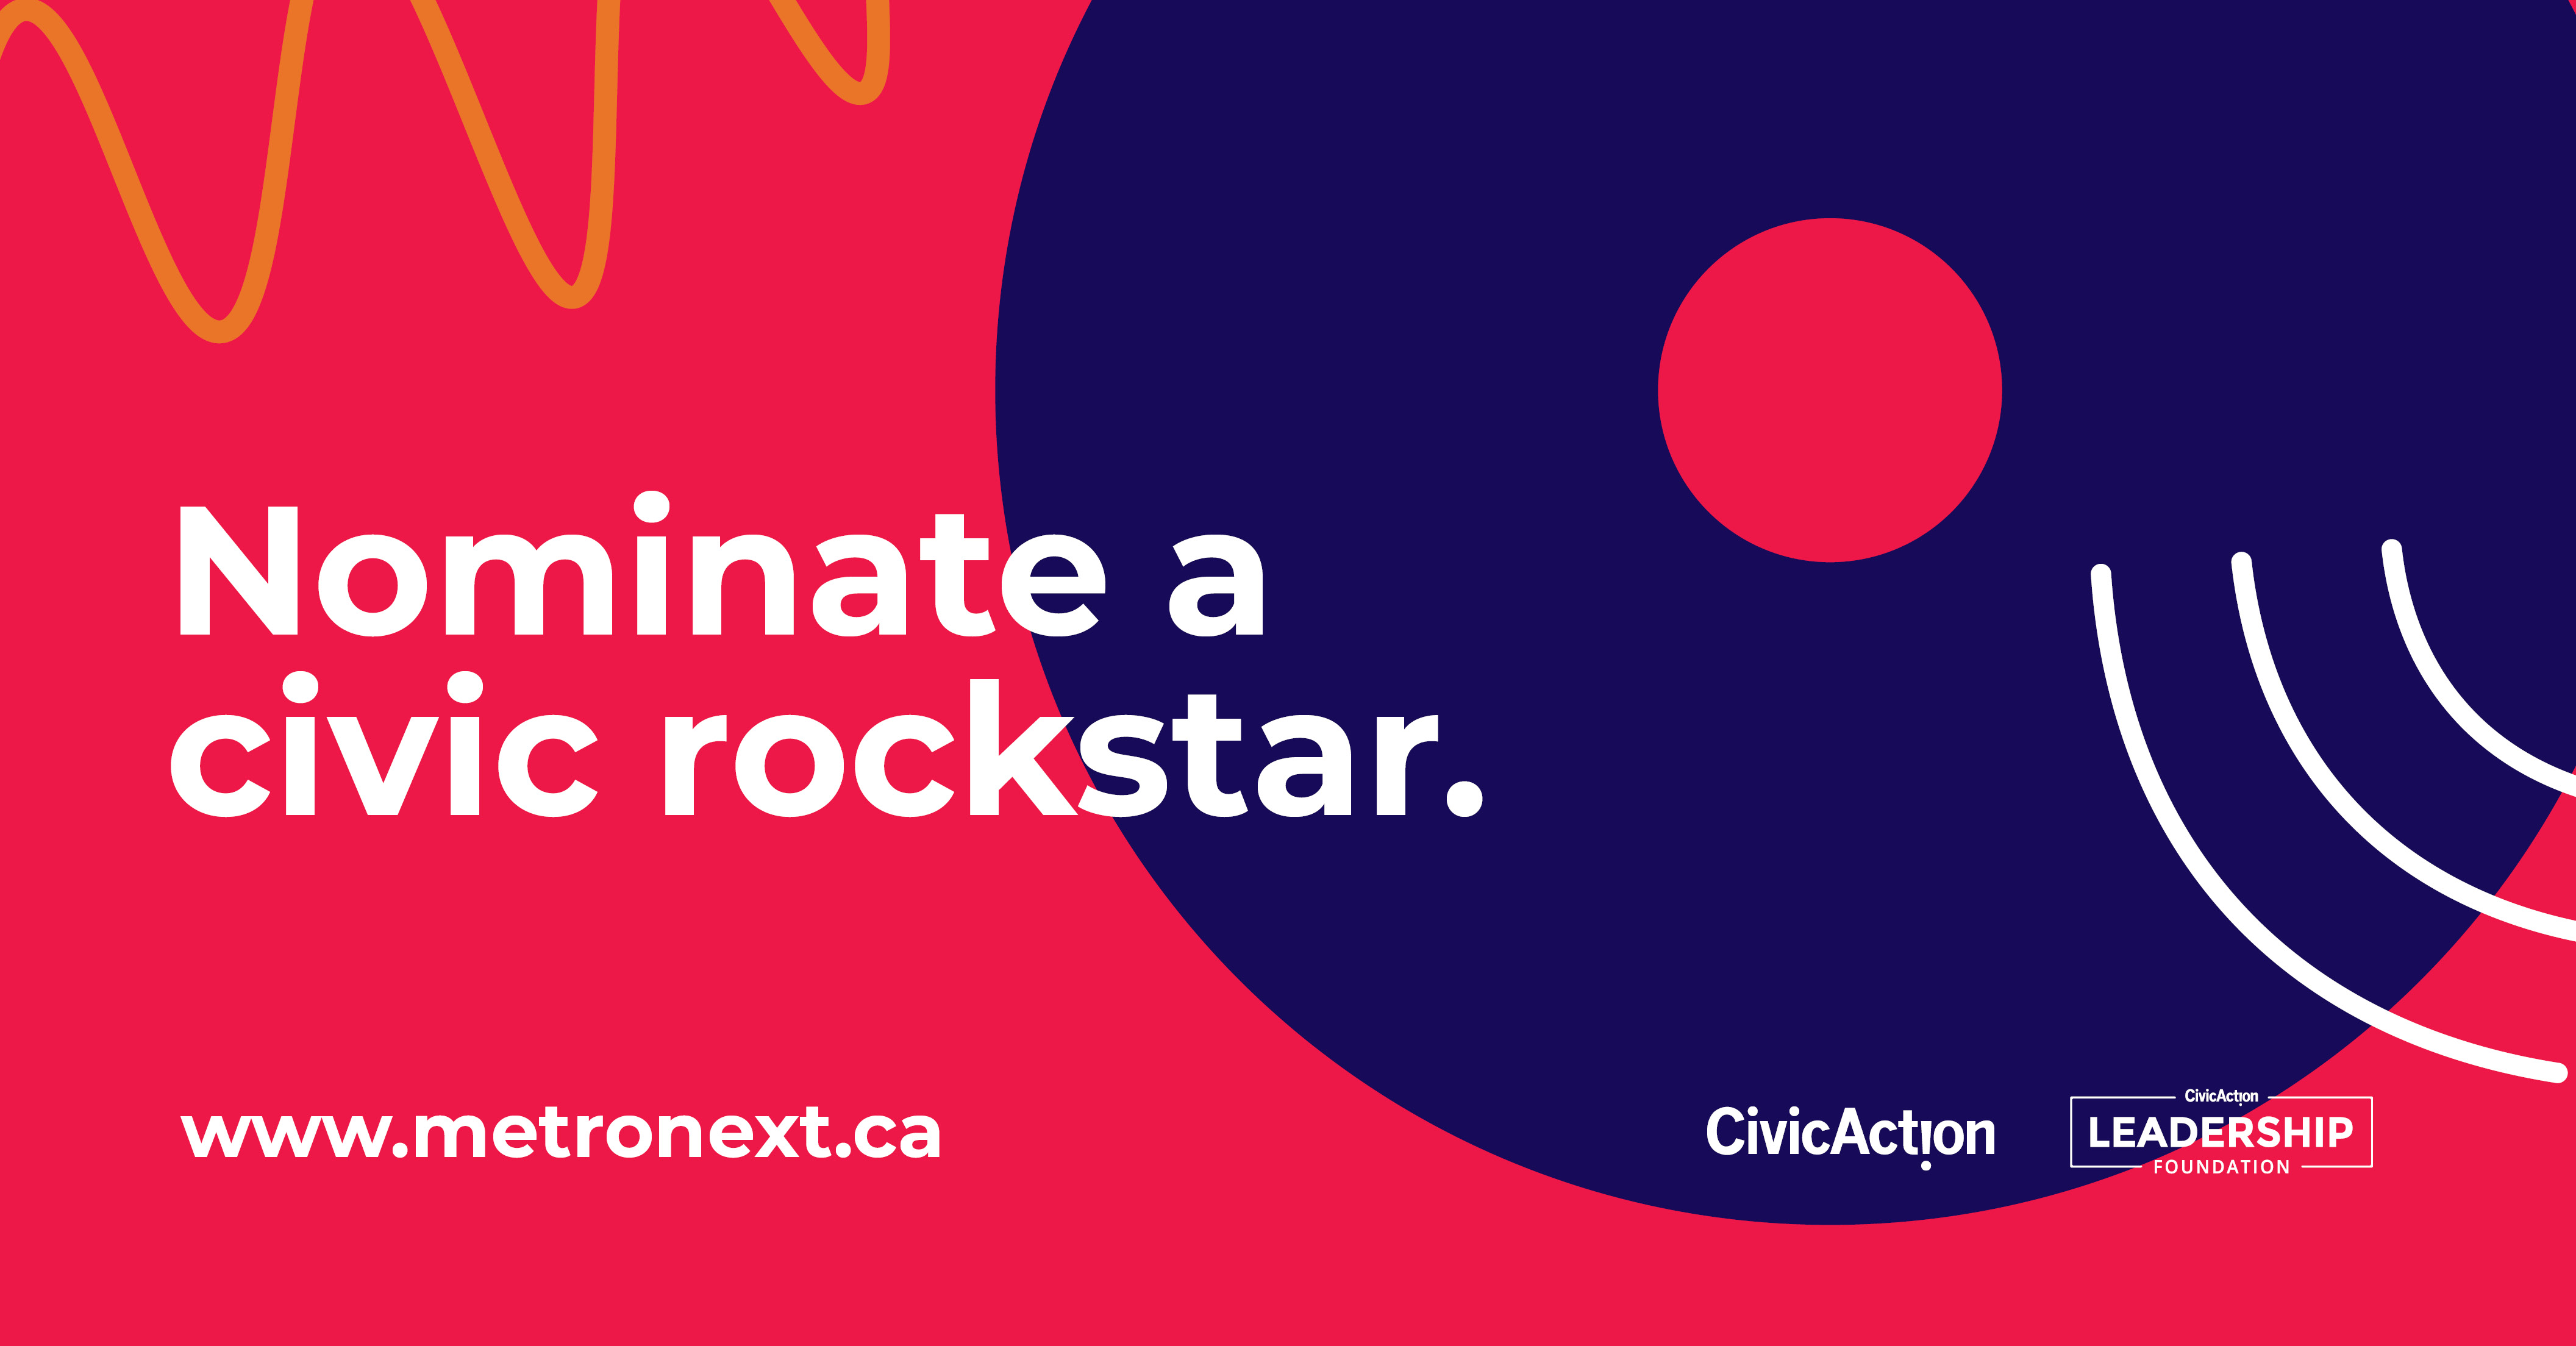 "Graphic elements in pink and dark blue portray a record and sound waves with text that says: ""Nominate a civic rockstar. www.metronext.ca."" With the CivicAction logo at the bottom right."